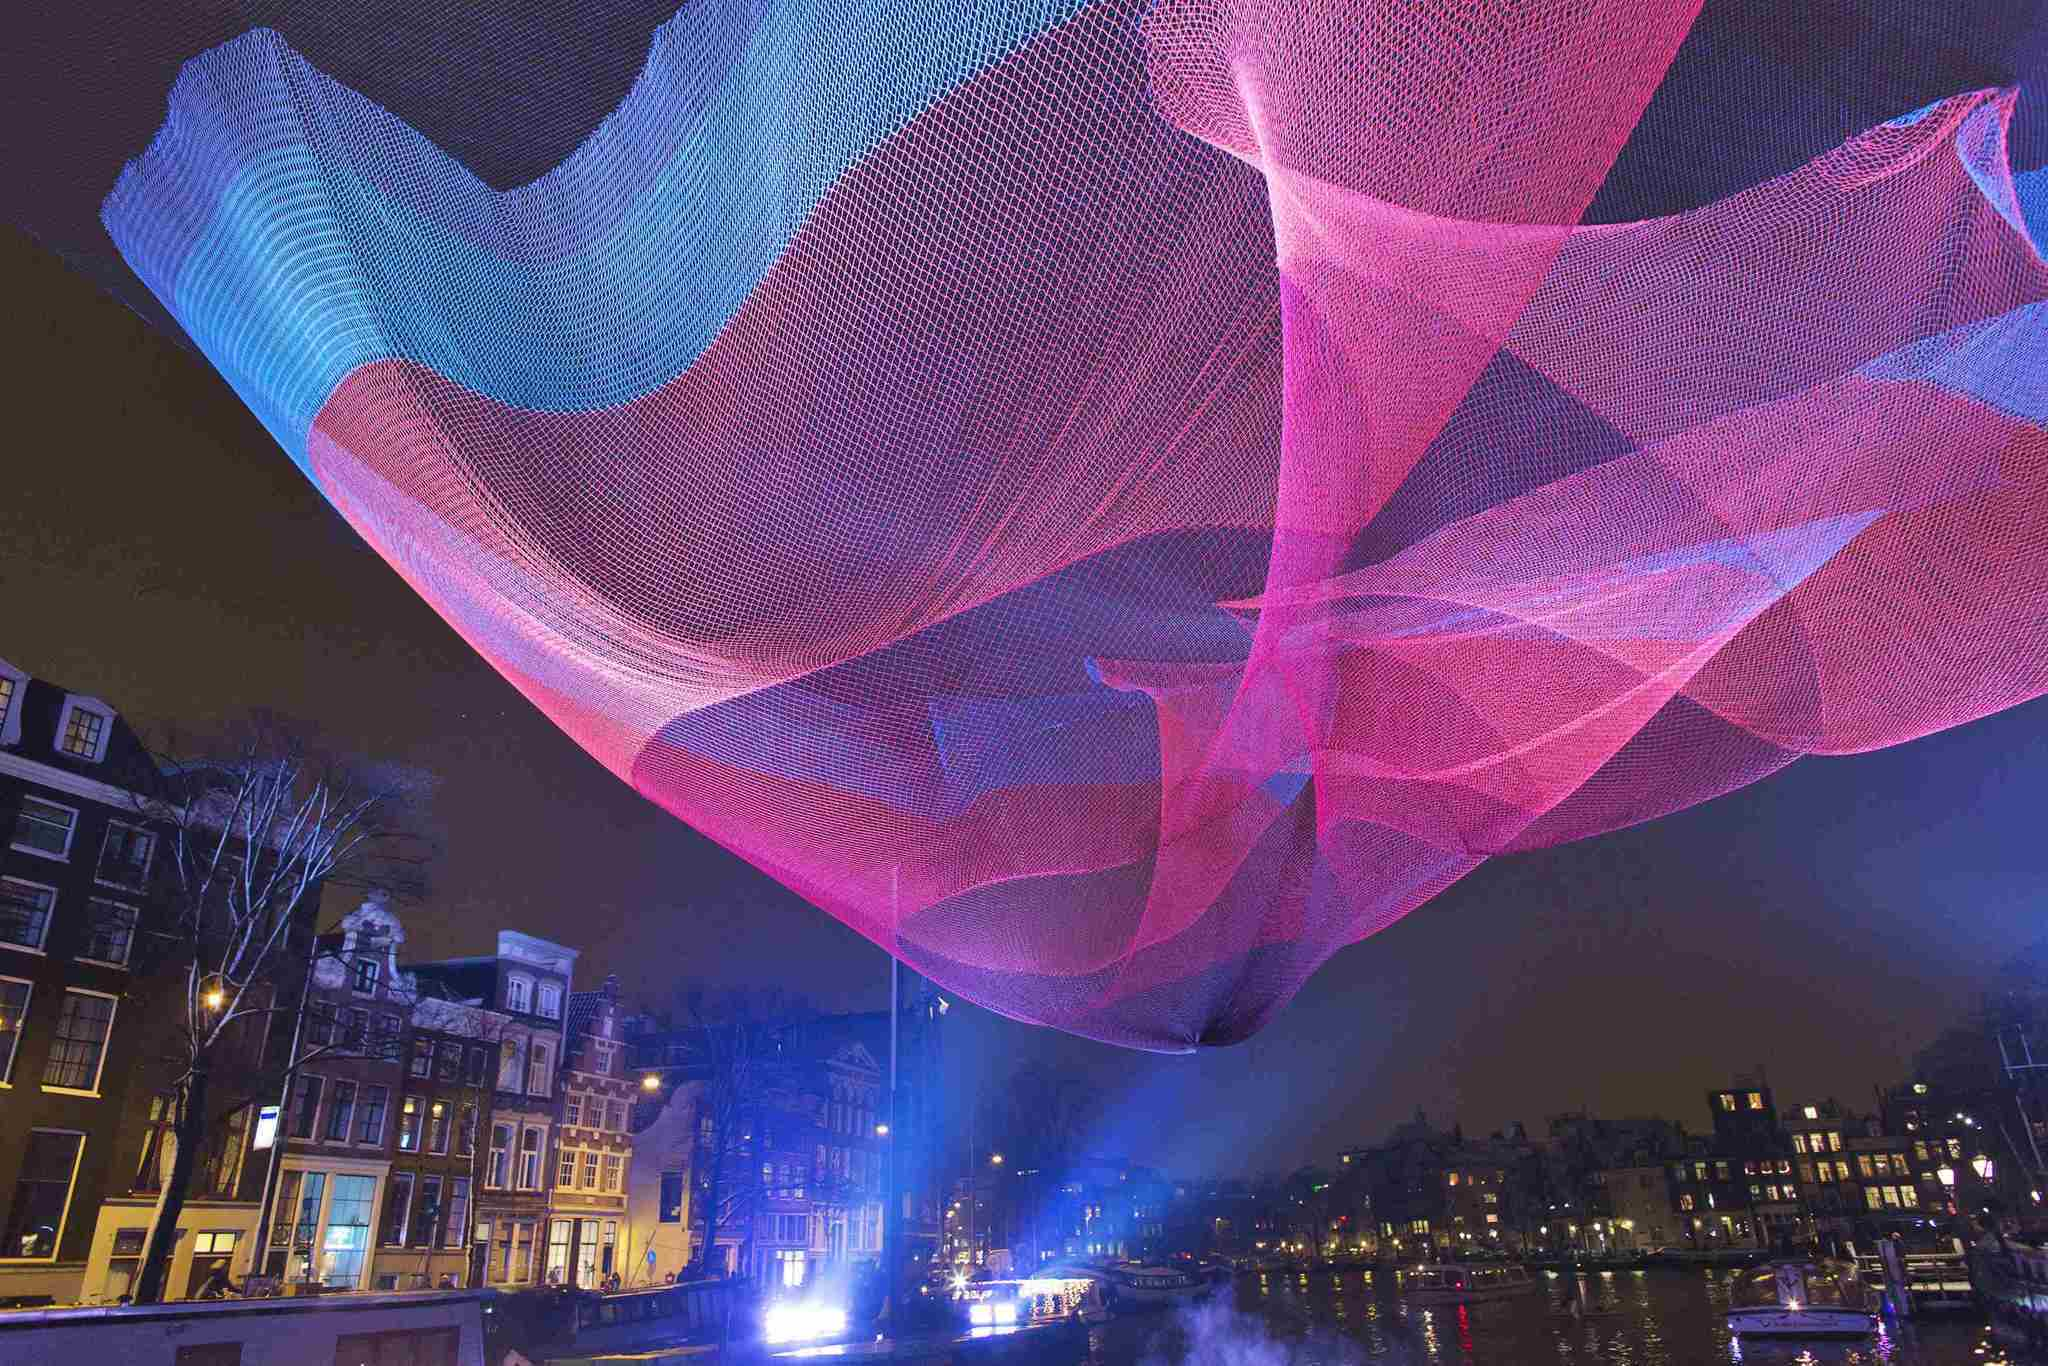 Pictures: Holiday lights from around the globe - Amsterdam Light Festival